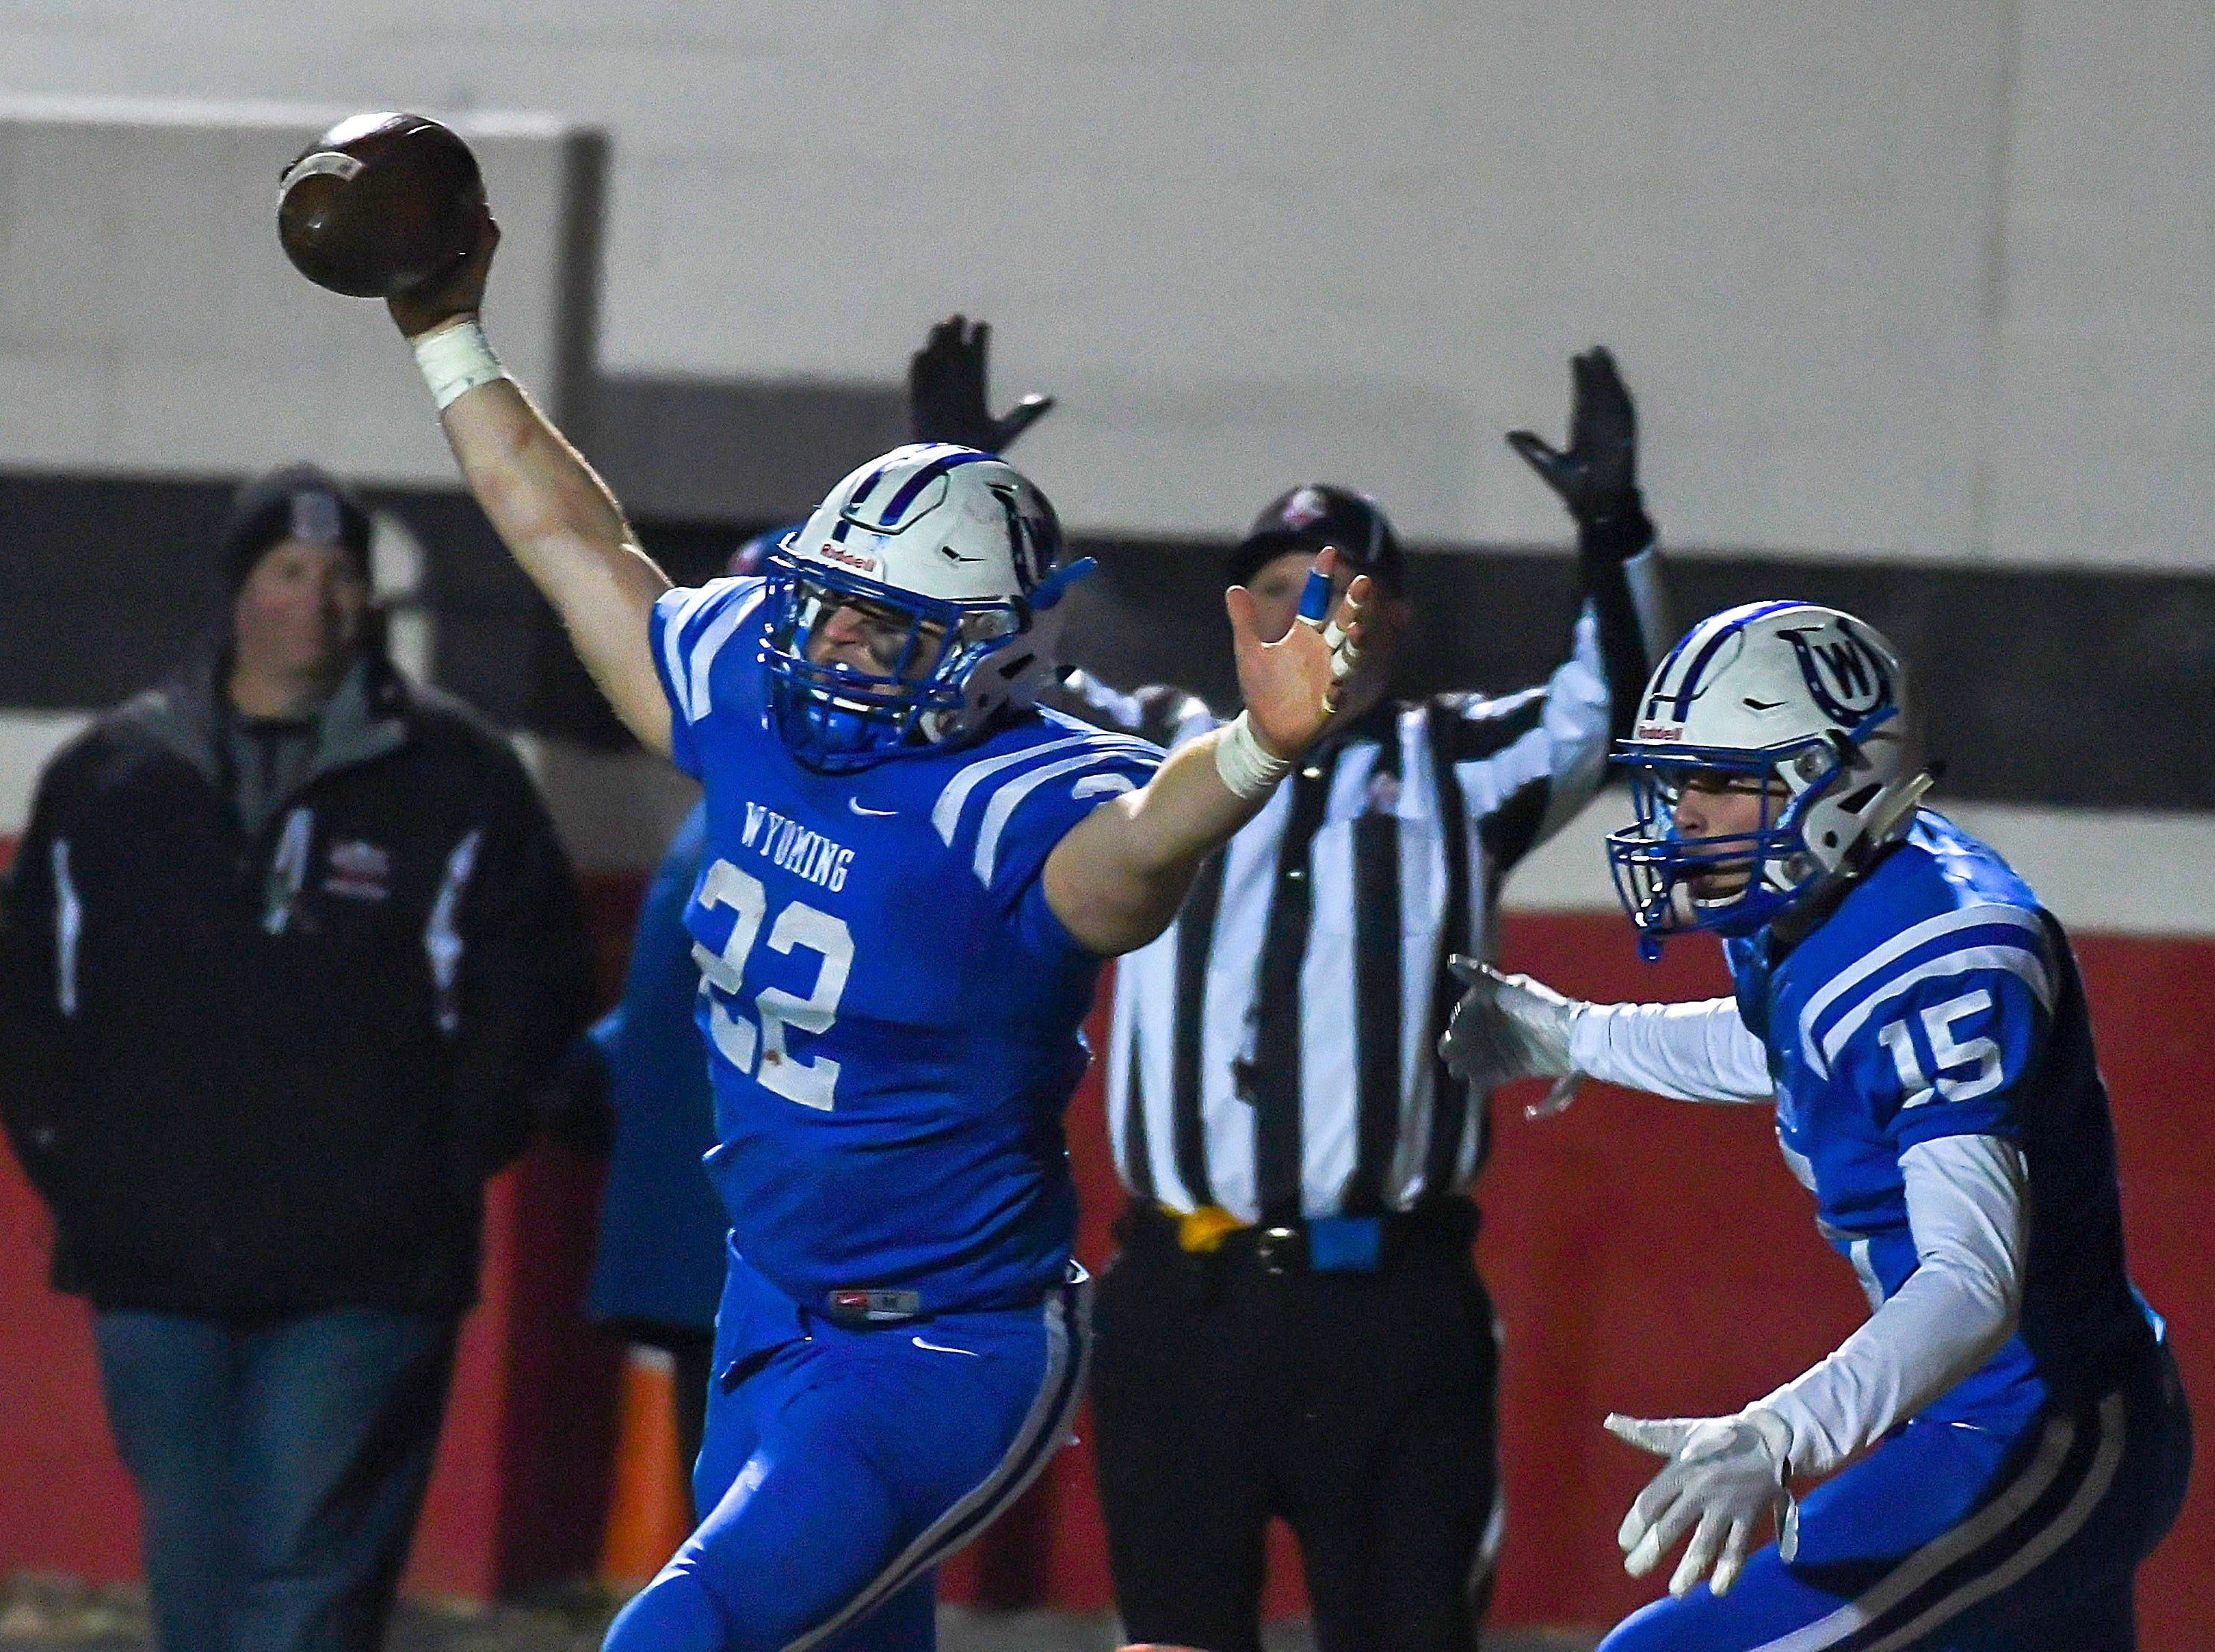 Pierson Rogers of Wyoming  celebrates the game-winning pass in overtime against Indian Hill in the OHSAA DIV Region 16 playoffs at Lakota West High School, Saturday, Nov. 10, 2018.